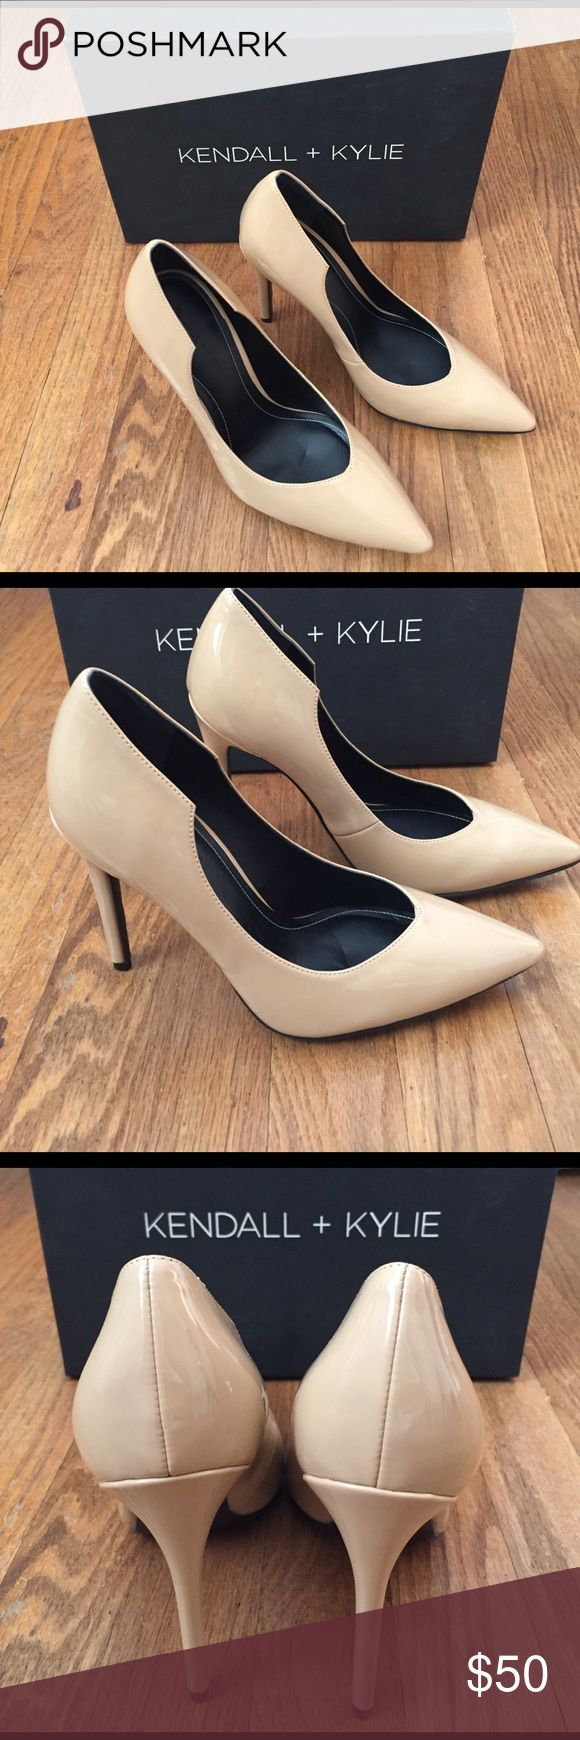 Kendall + Kylie Abi Pumps Gorgeous nude pumps from Kendall + Kylie. A great neutral